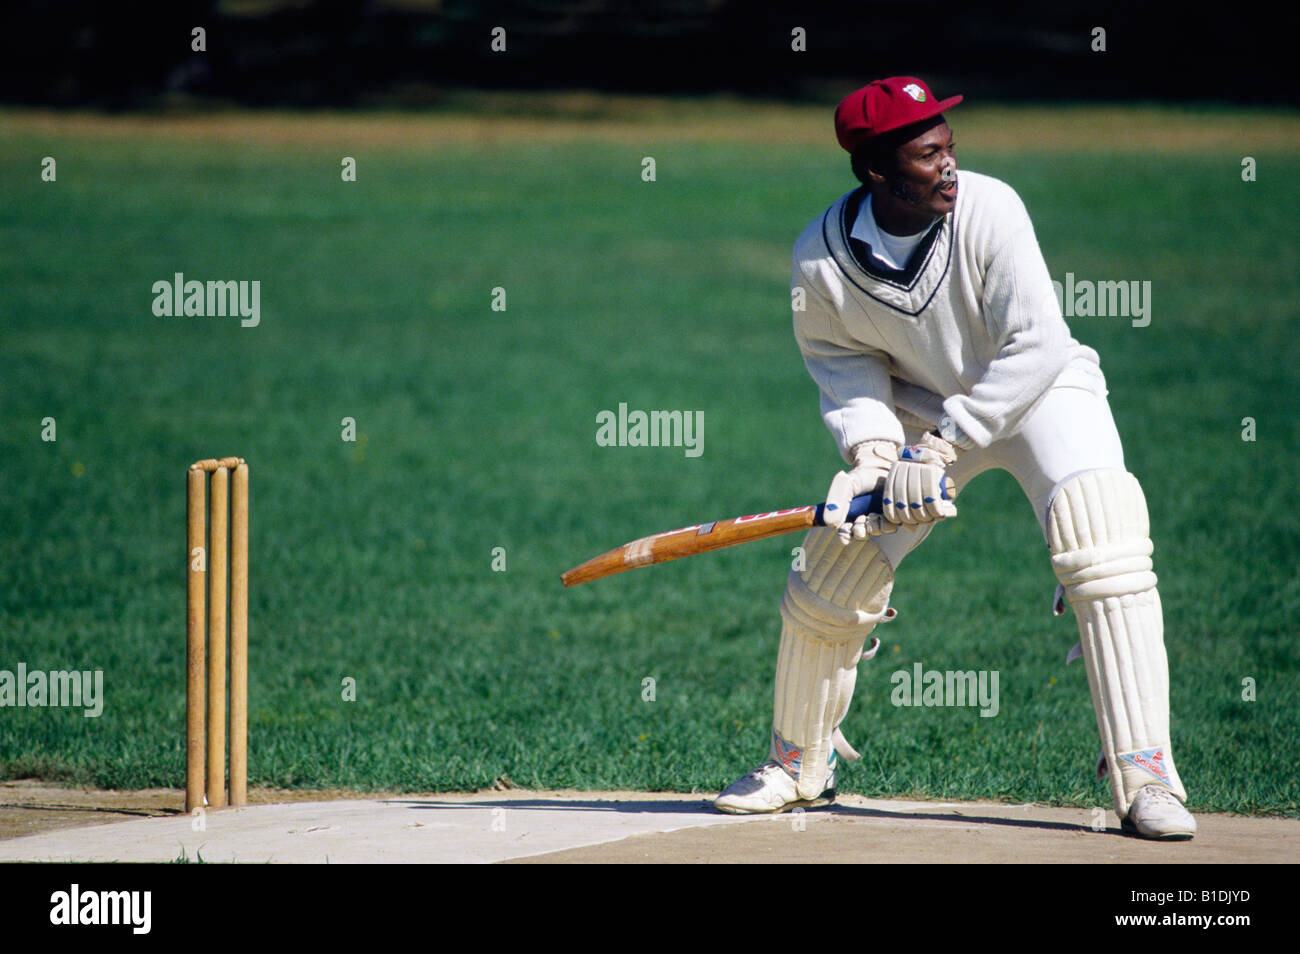 A cricket player bats during an informal match at Franklin Park in Boston - Stock Image